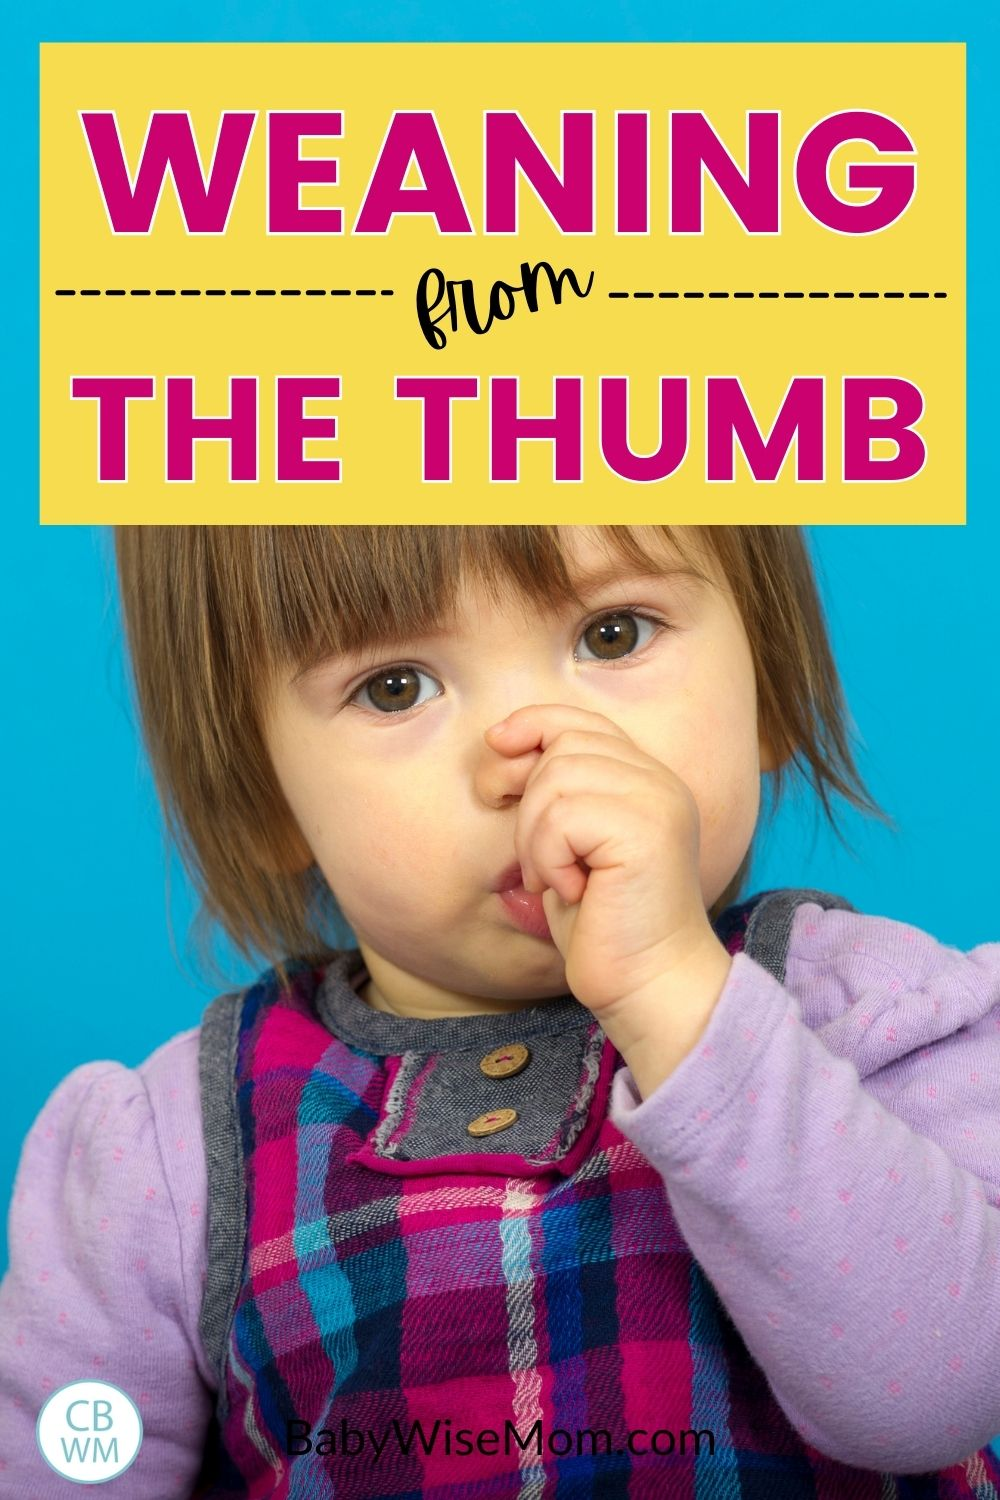 Weaning from thumb sucking